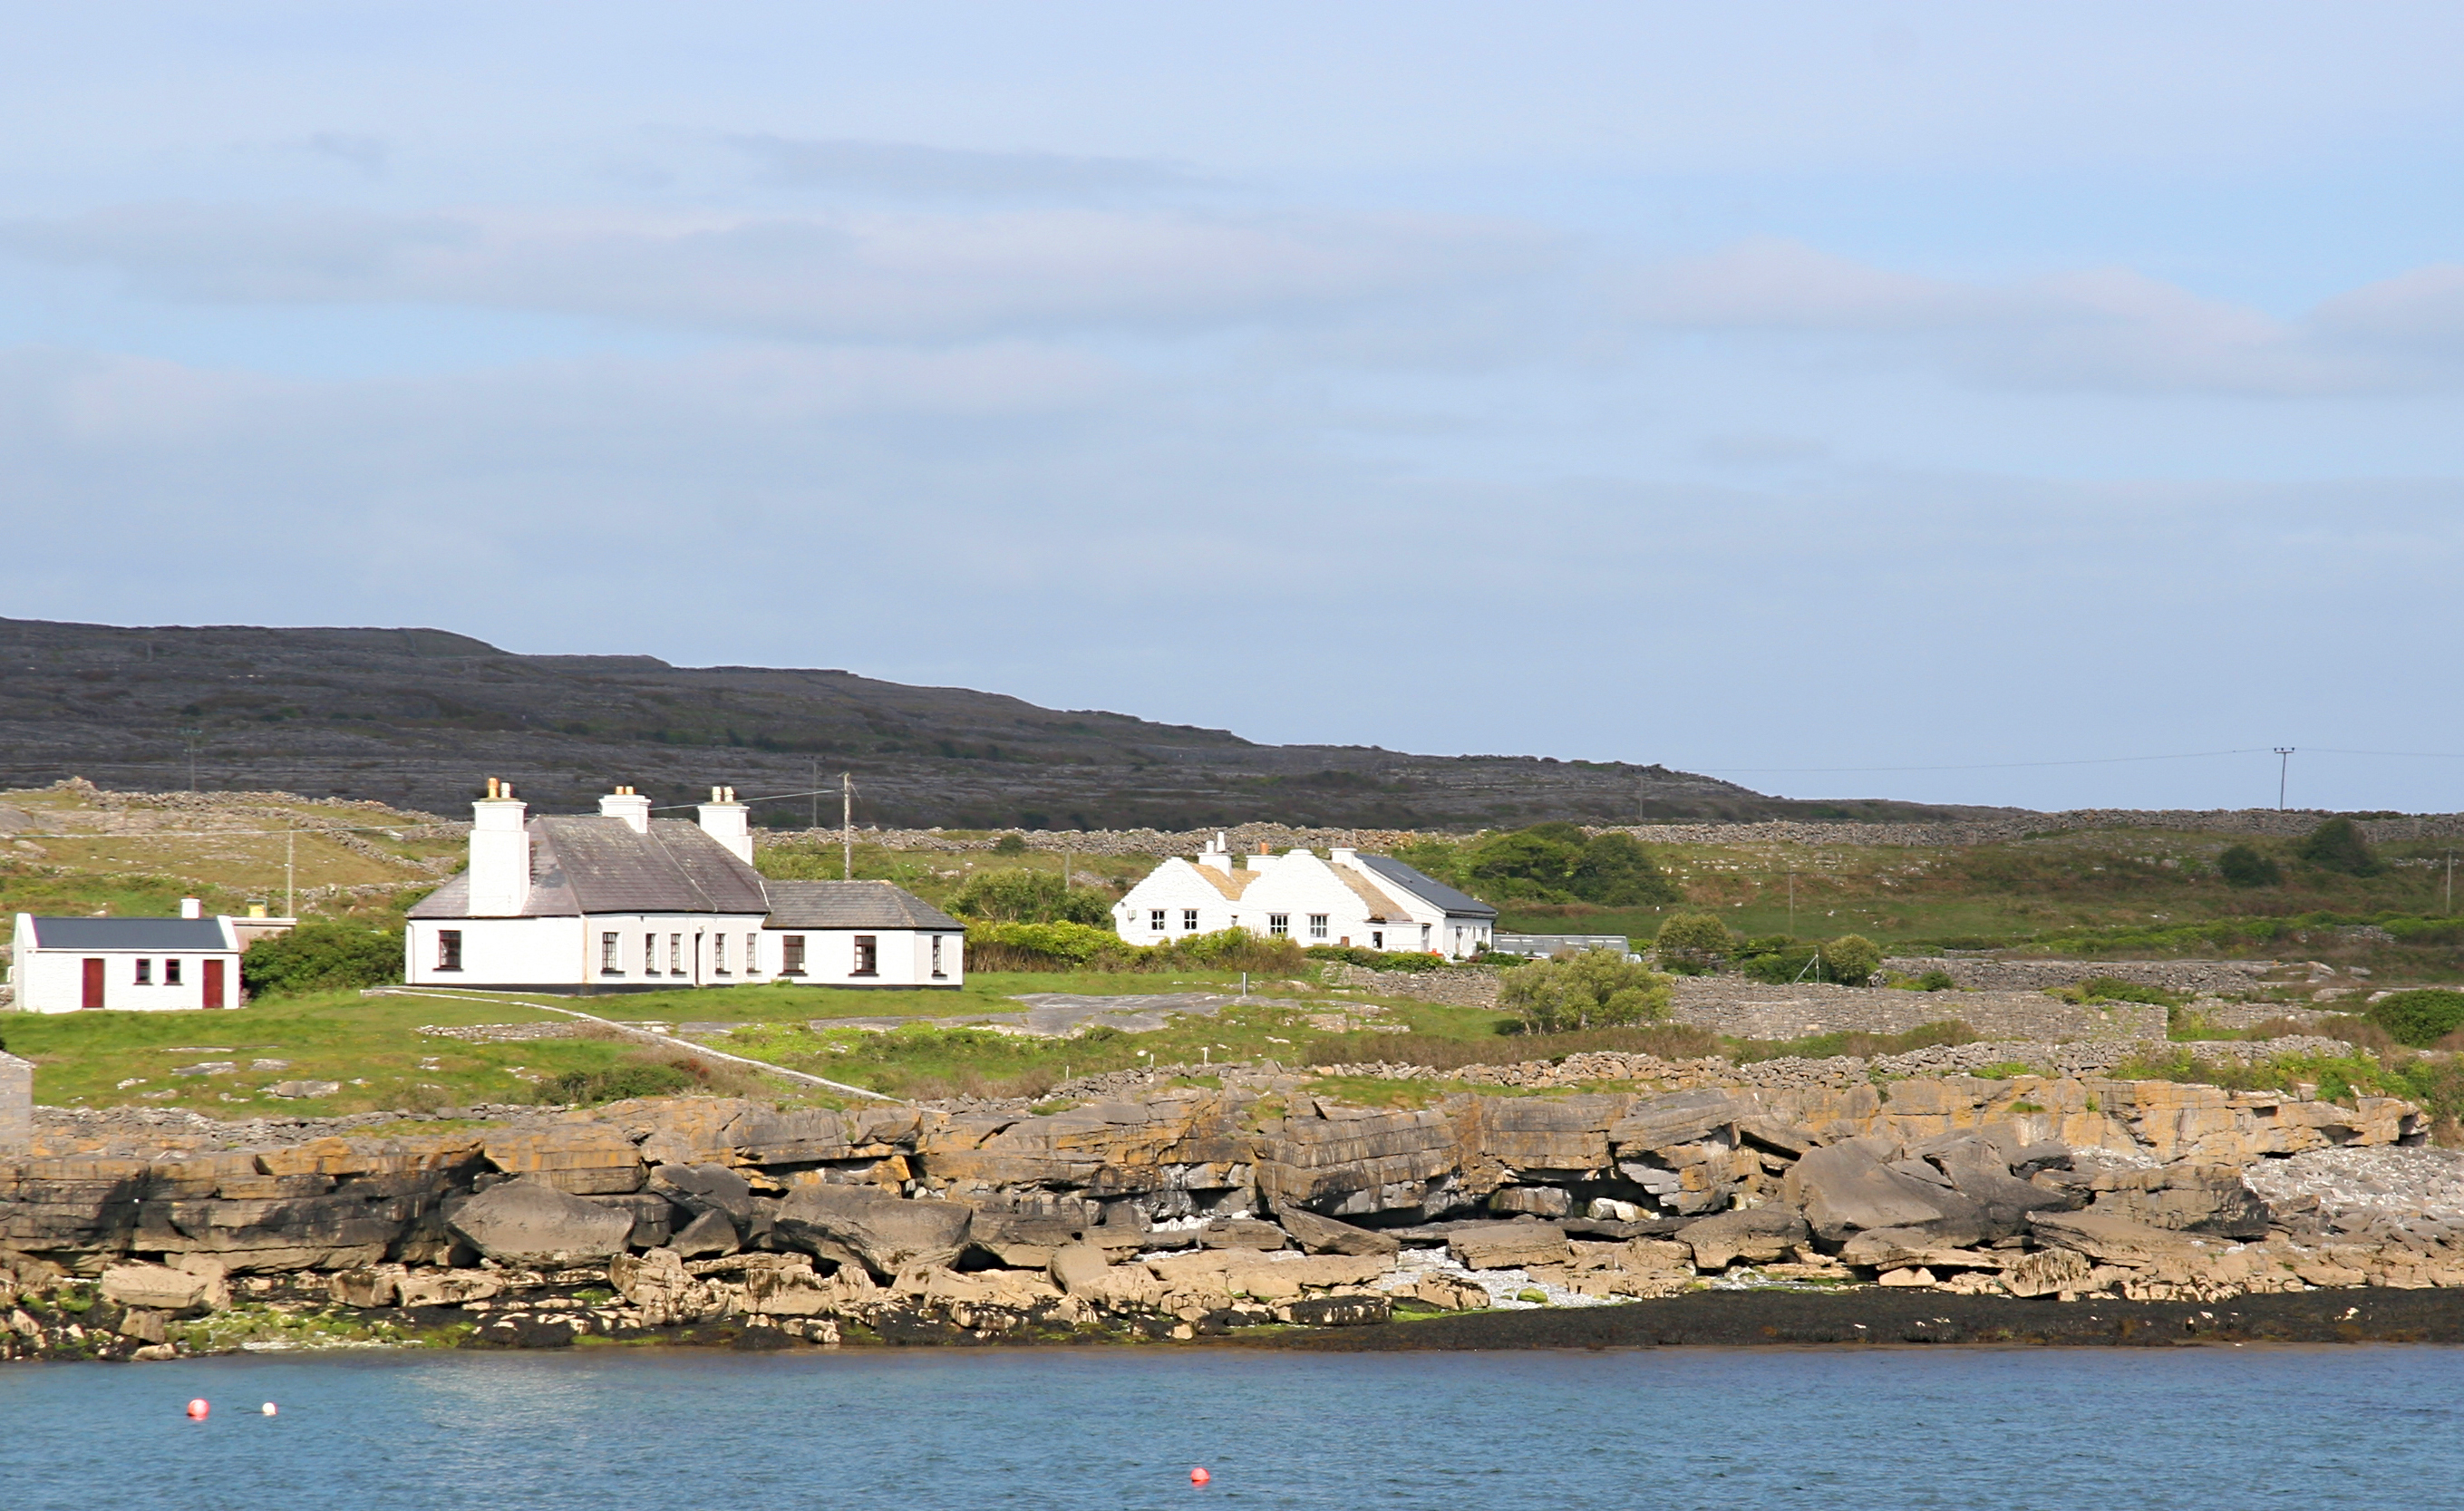 Cottages, Aran Islands Ireland 2.jpg